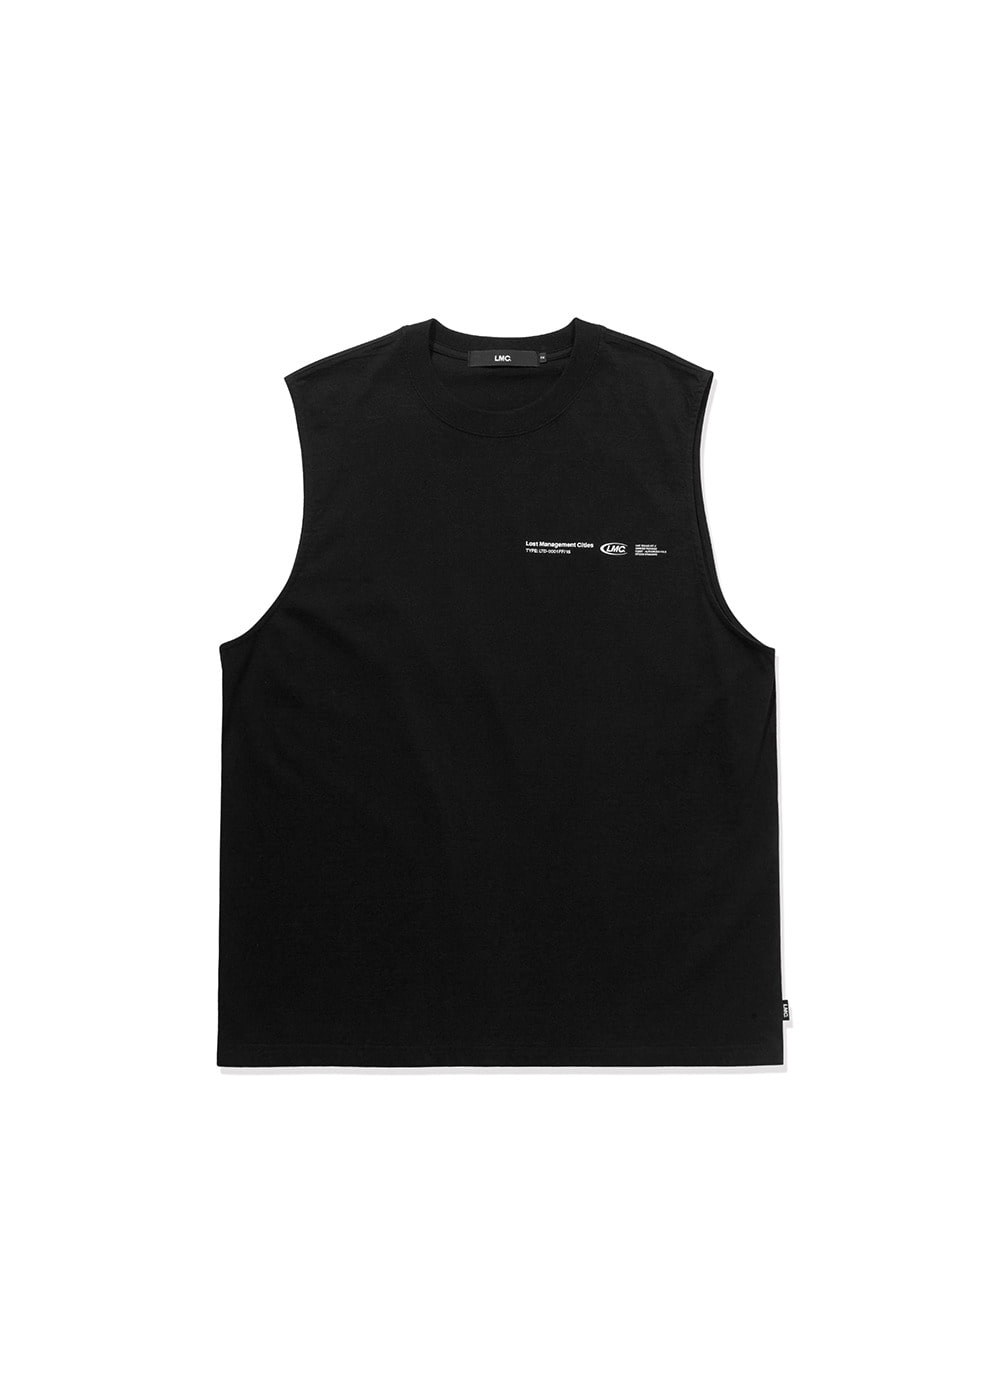 LMC LOGO PACK OVERSIZED SLEEVELESS black